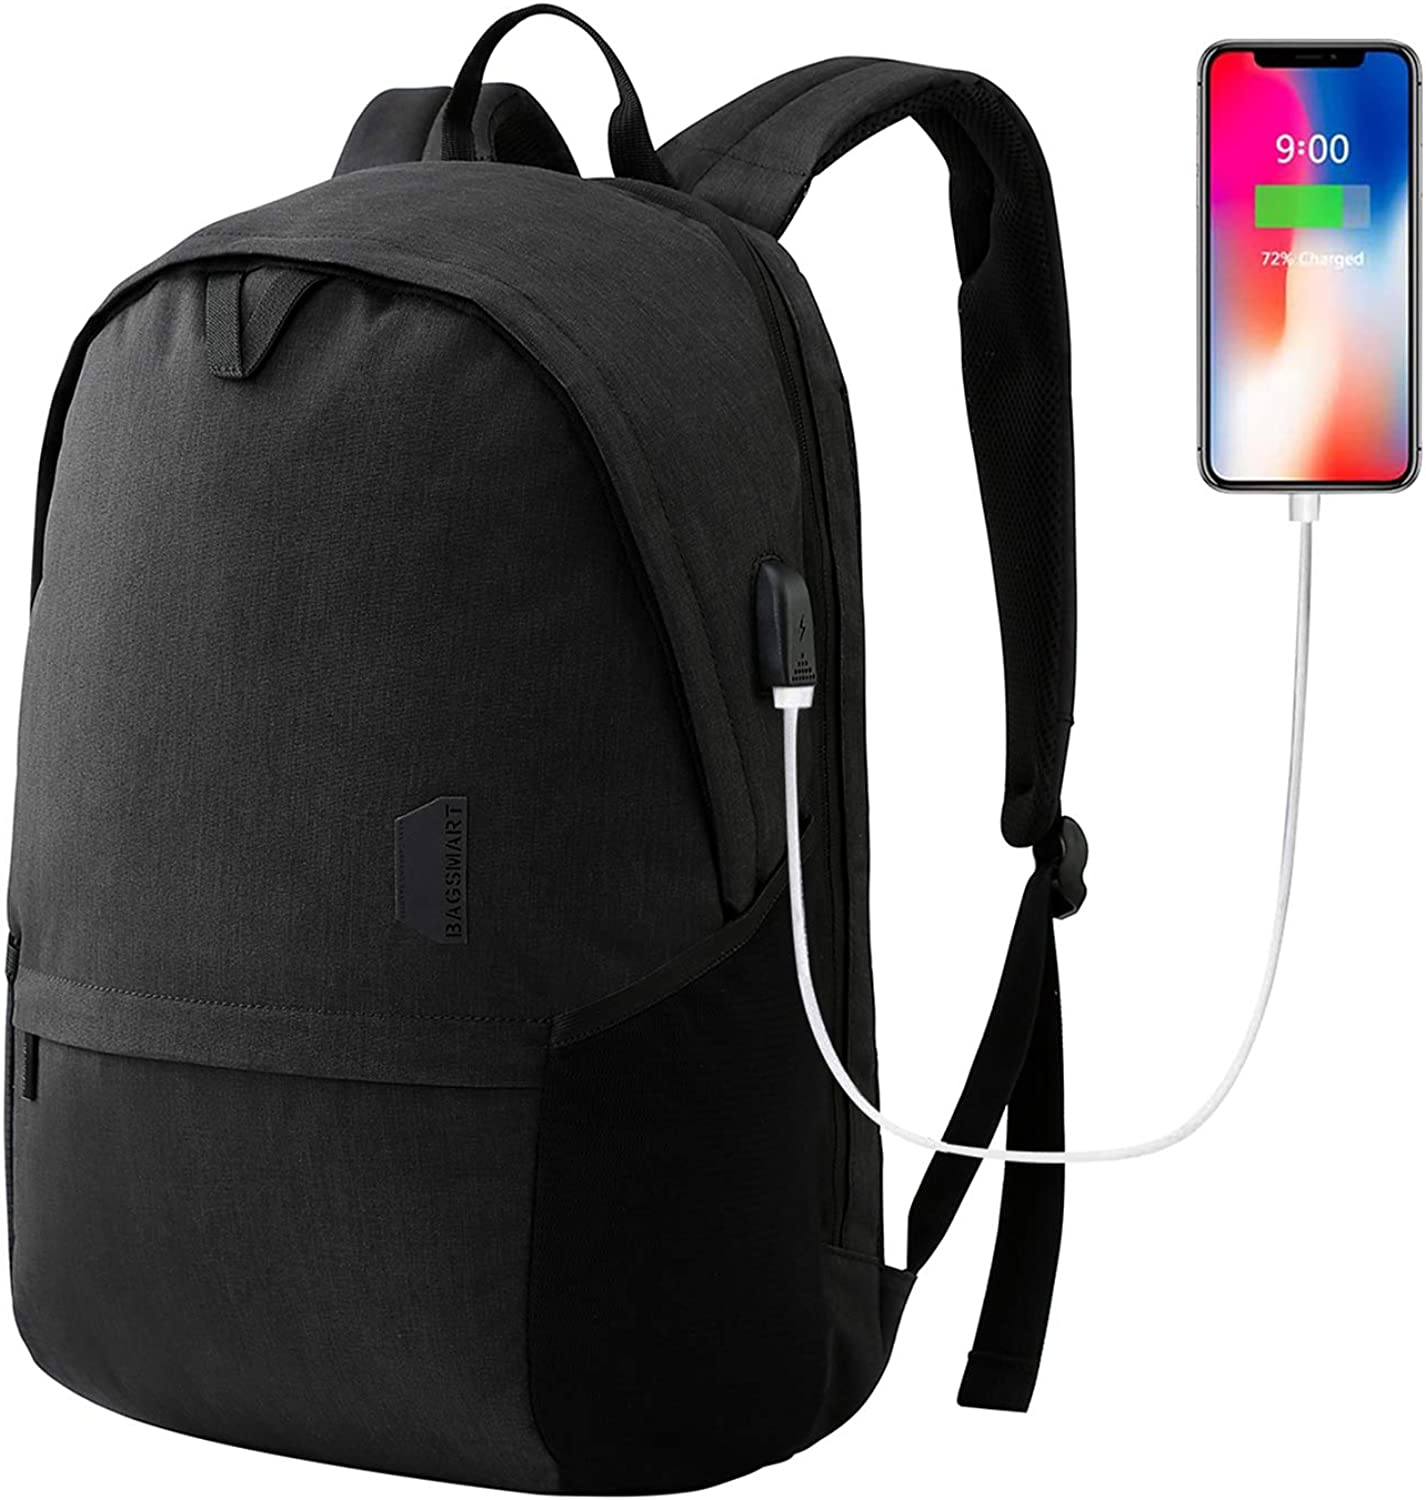 Laptop Backpack, BAGSMART 15.6 Travel Backpack for Women Men with USB Charging Port Durable Water Resistant Schlool Backpack